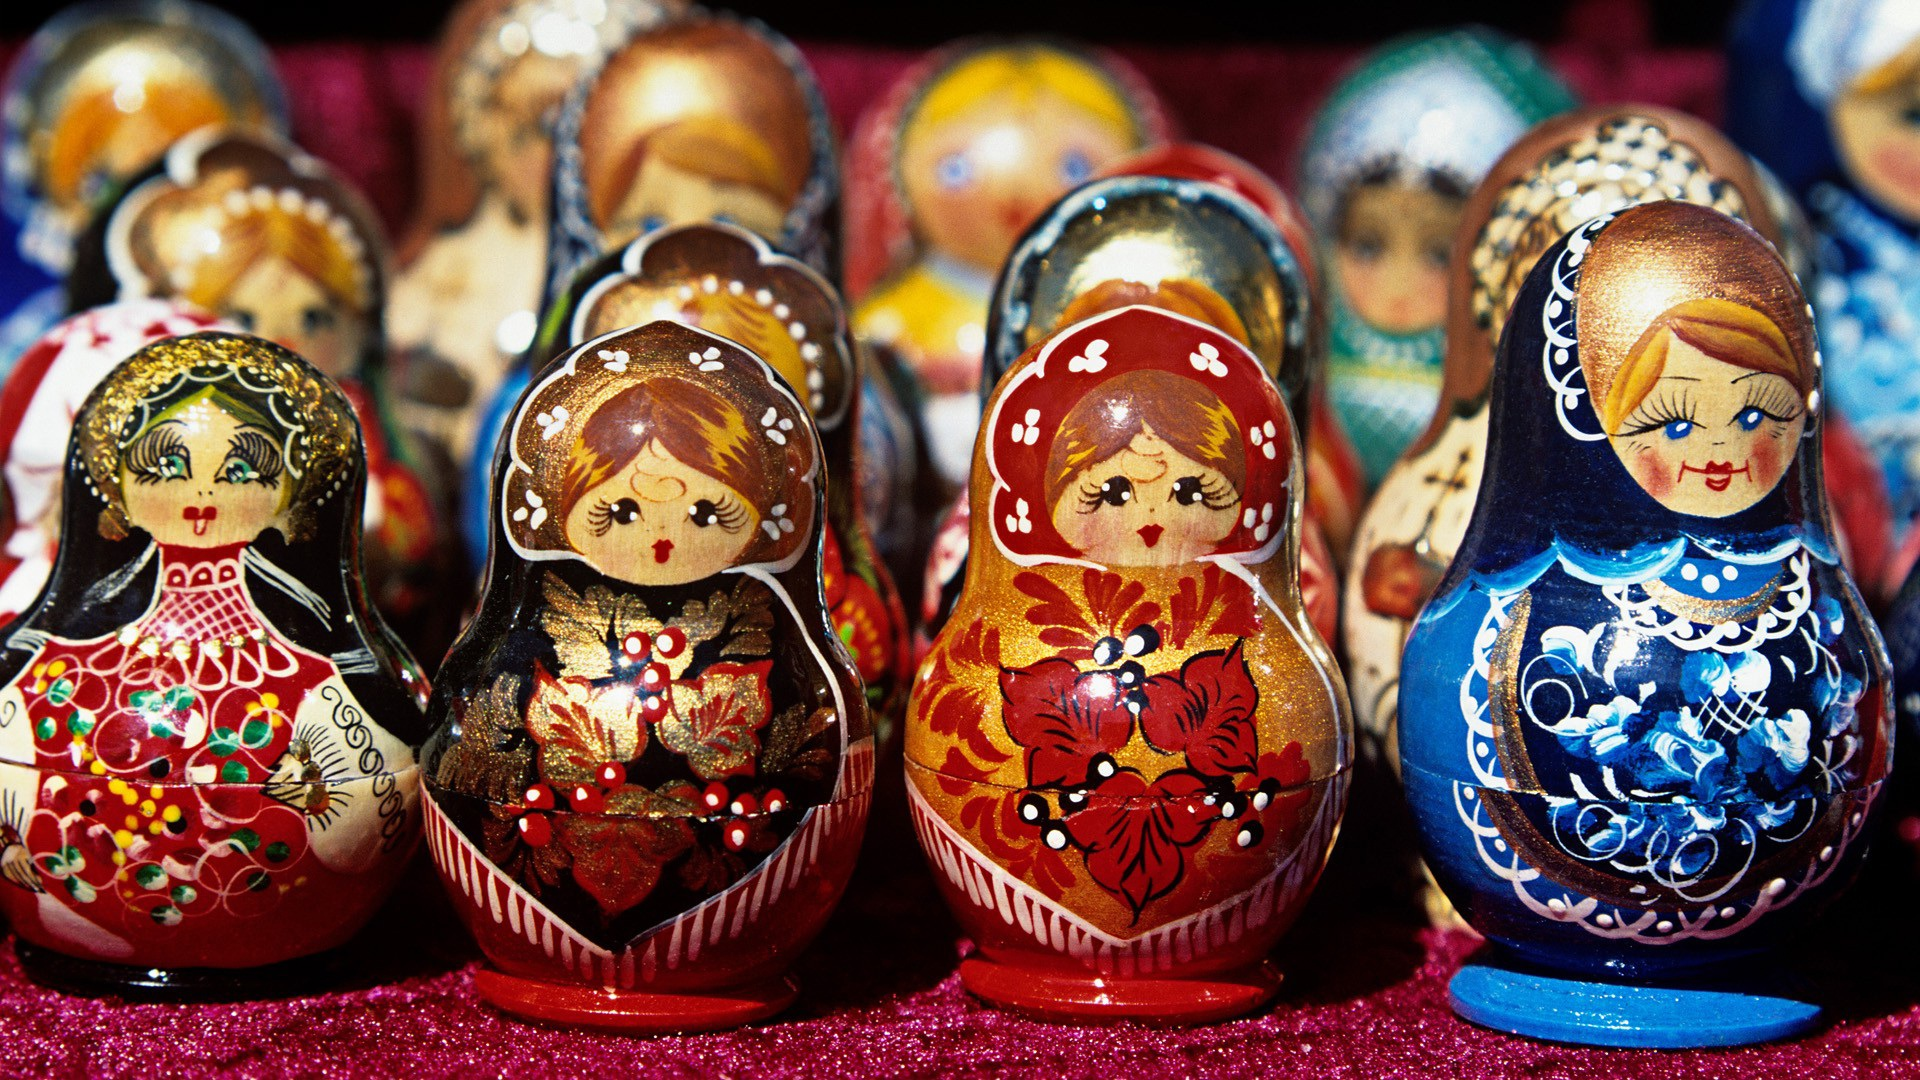 A series of matryoshka dolls